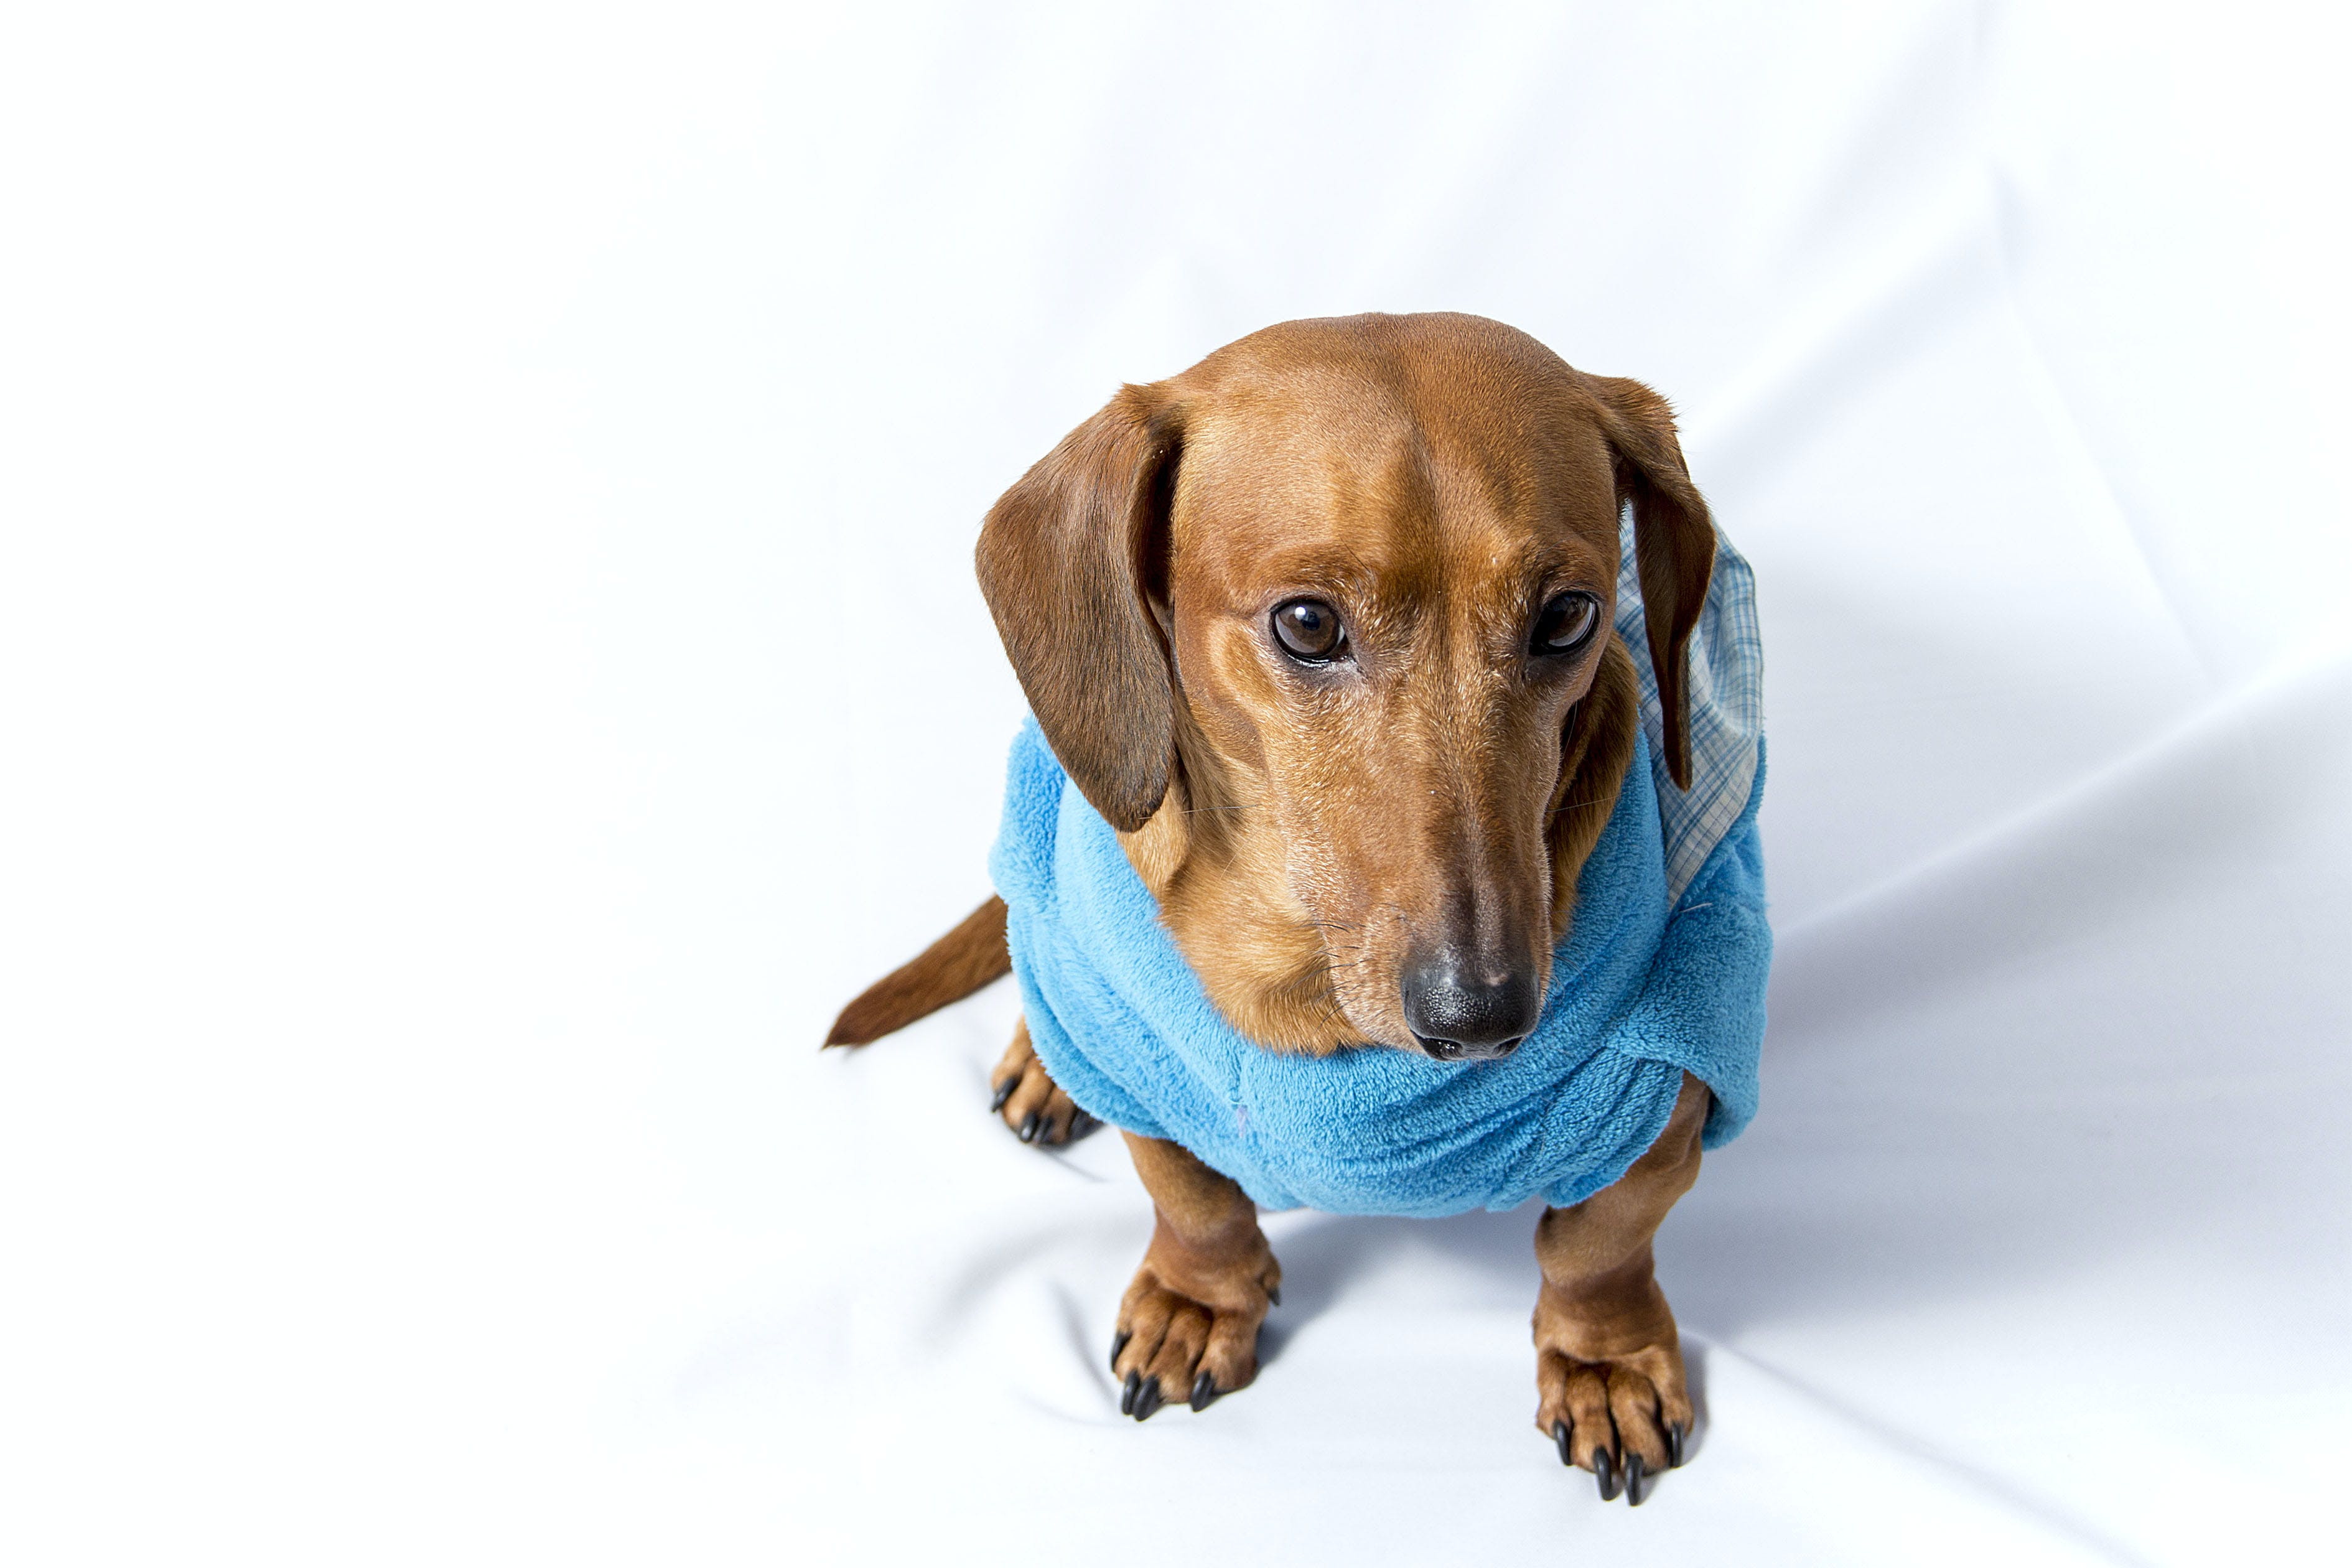 Adult Brown Dachshund Wearing Blue Shirt